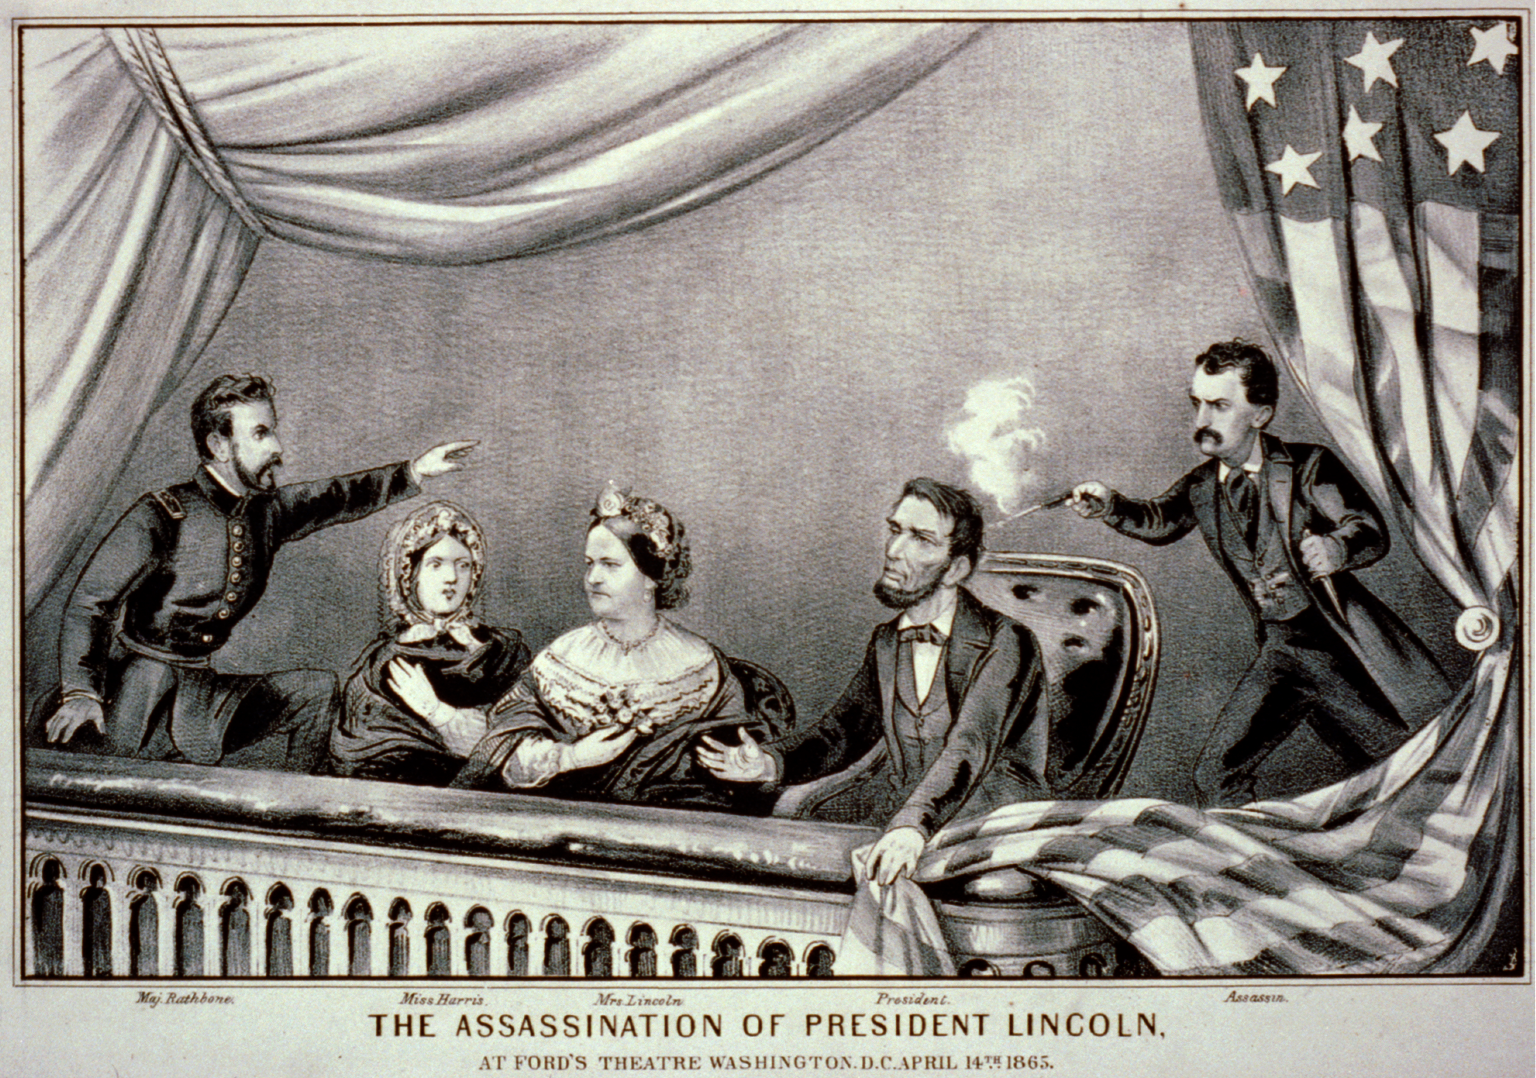 The Assassination of President Lincoln by Currier and Ives